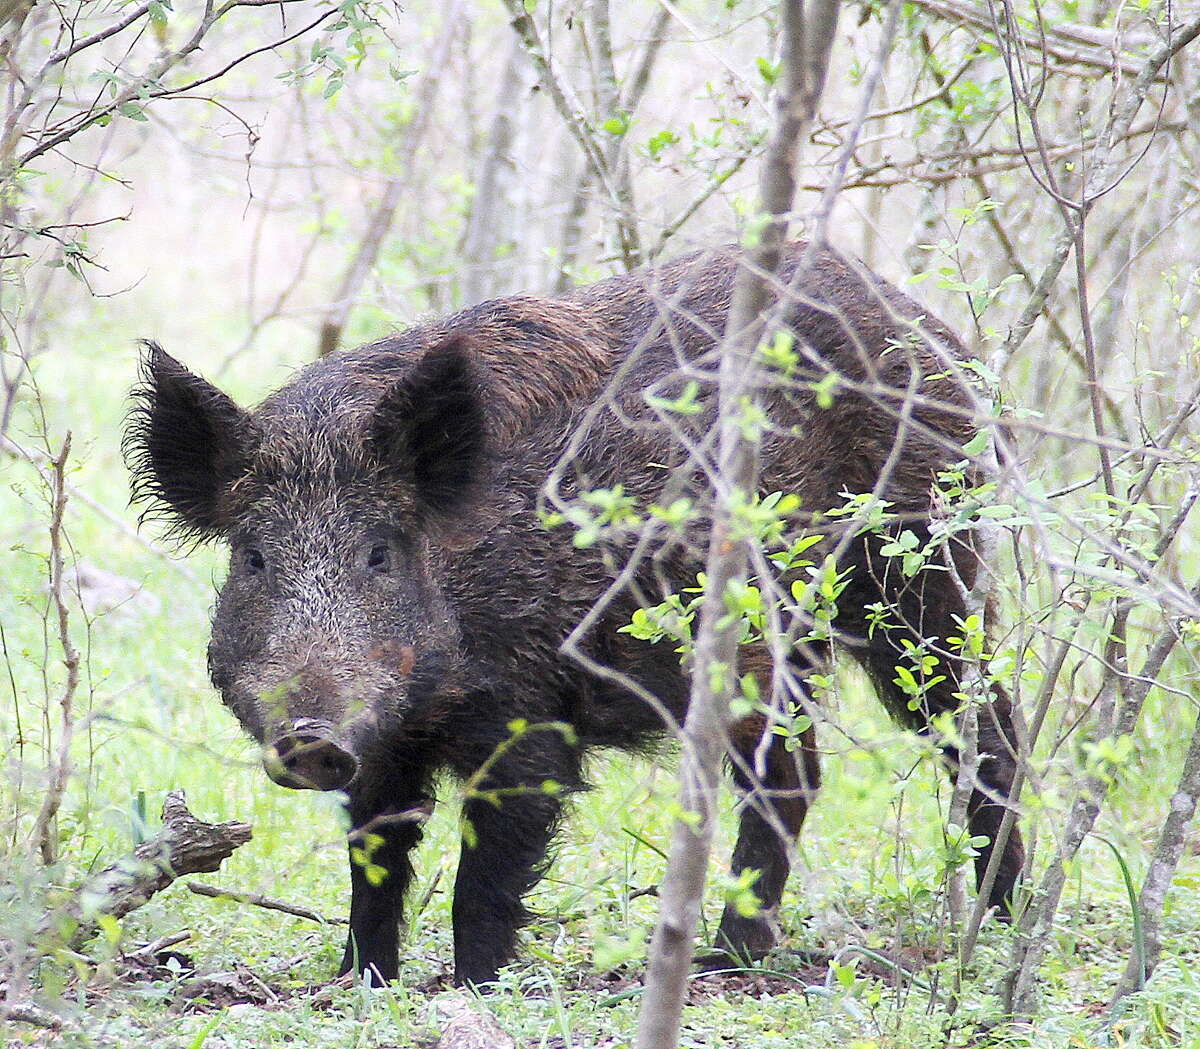 Tails can be brought in during regular business hours (8am-12pm and 1pm-5pm) on Tuesdays and Thursdays.Source: Guadalupe County Feral Hog Bounty Policy